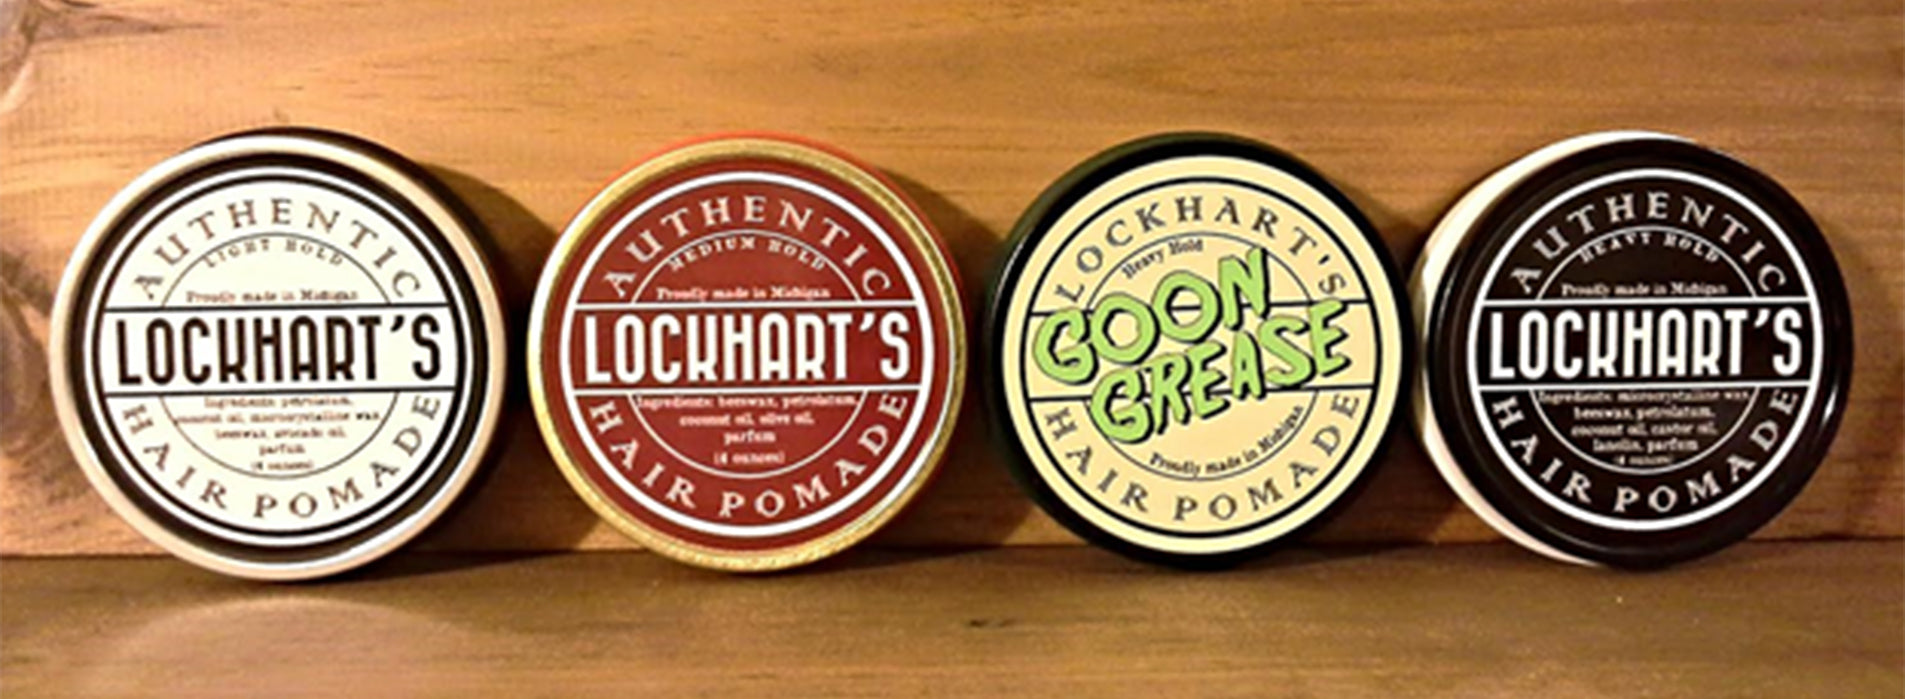 Lockhart's Authentic Pomades